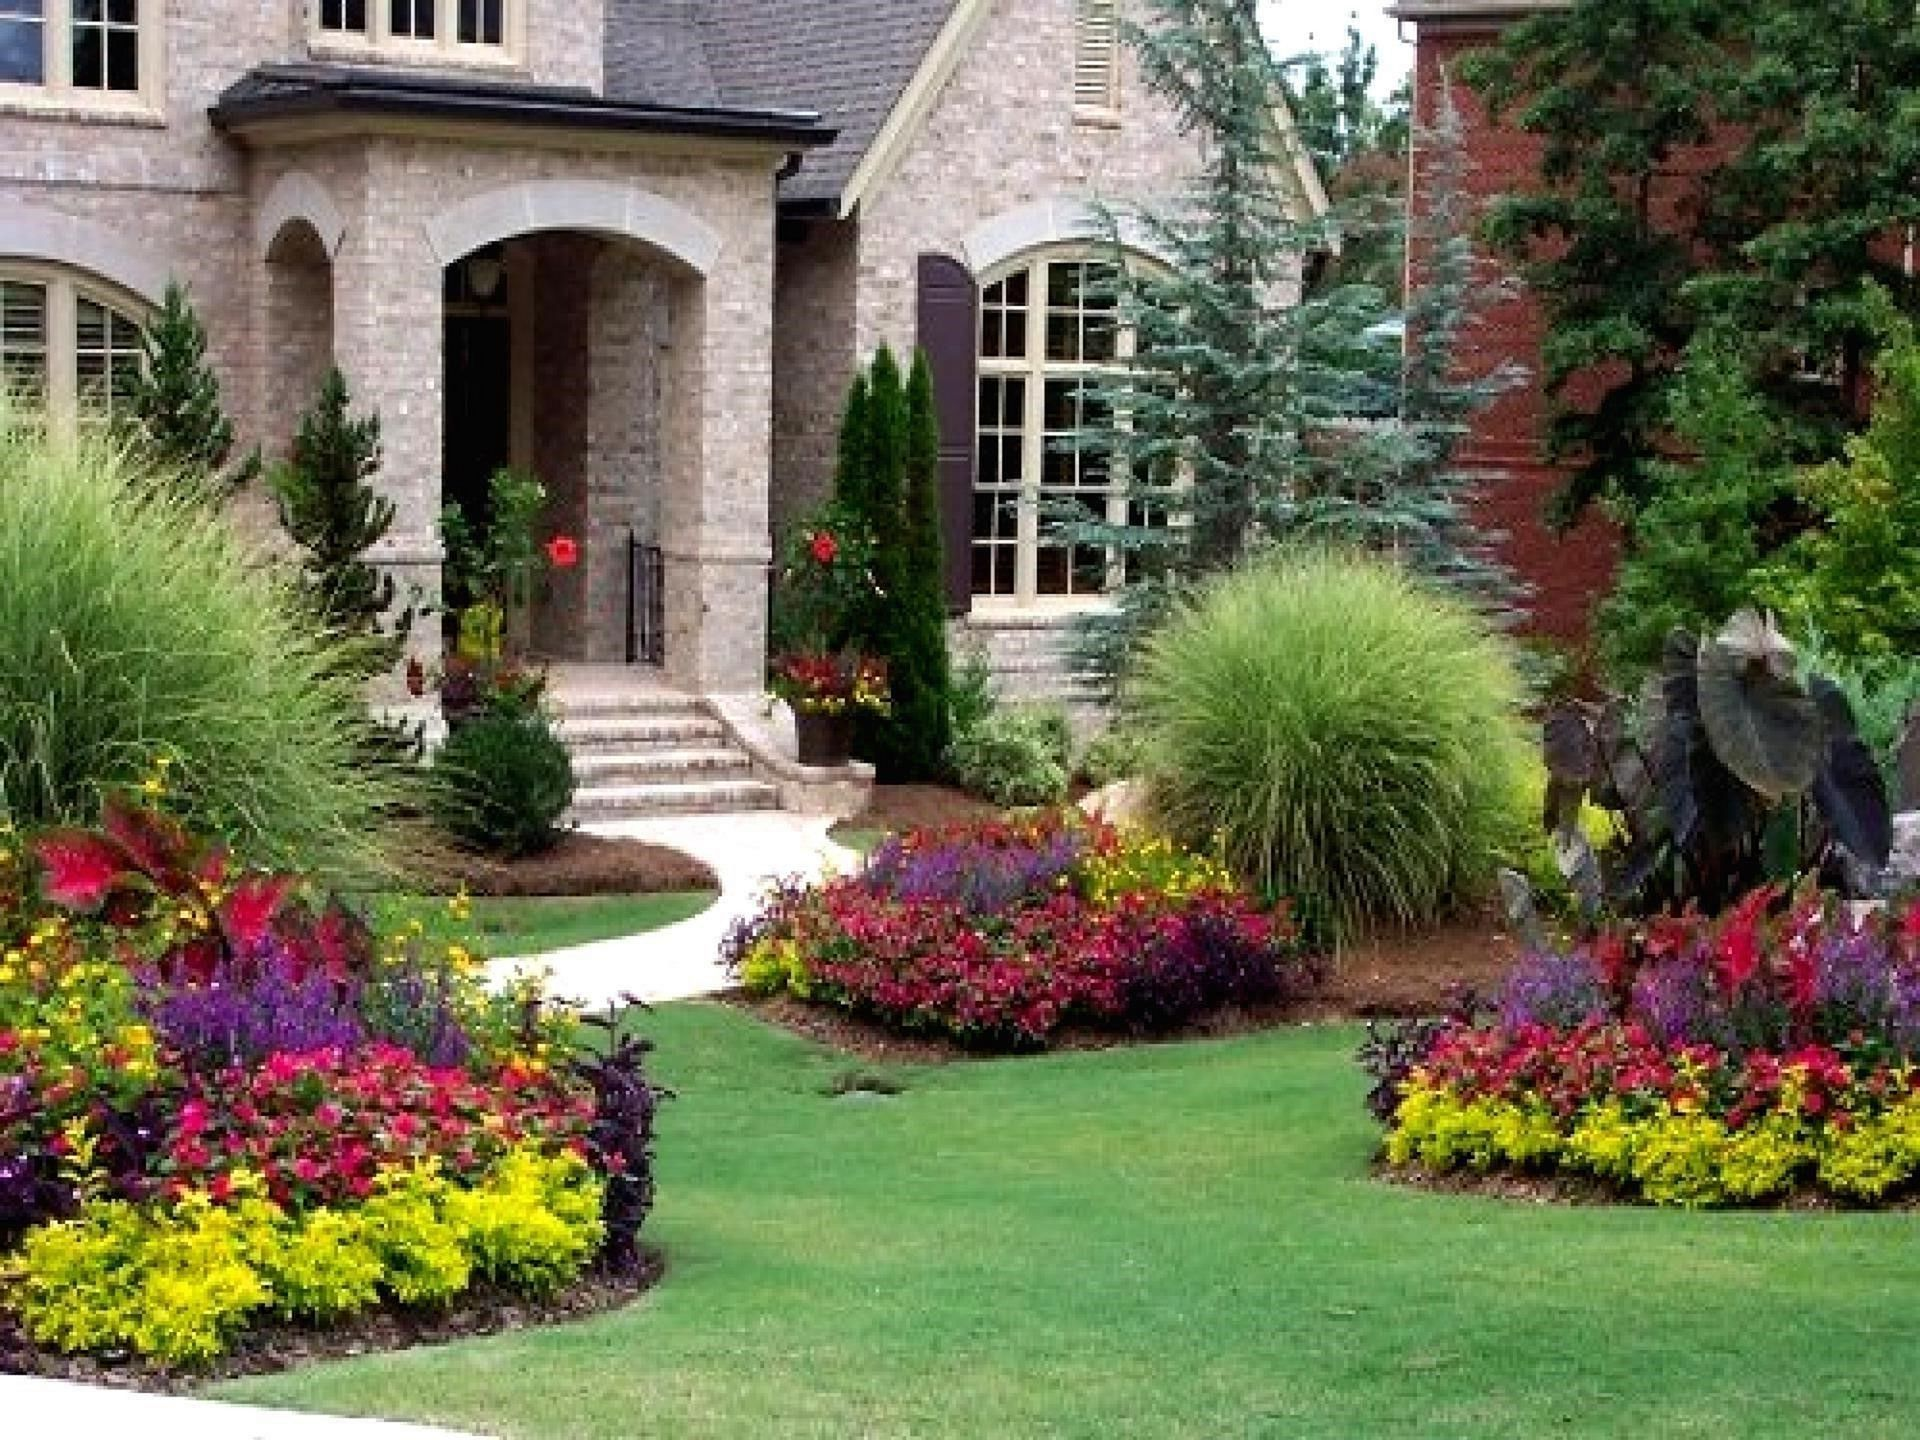 25 Awesome Flower Beds In Front Yard Design Ideas House Landscape Front House Landscaping Front Yard Landscaping Design